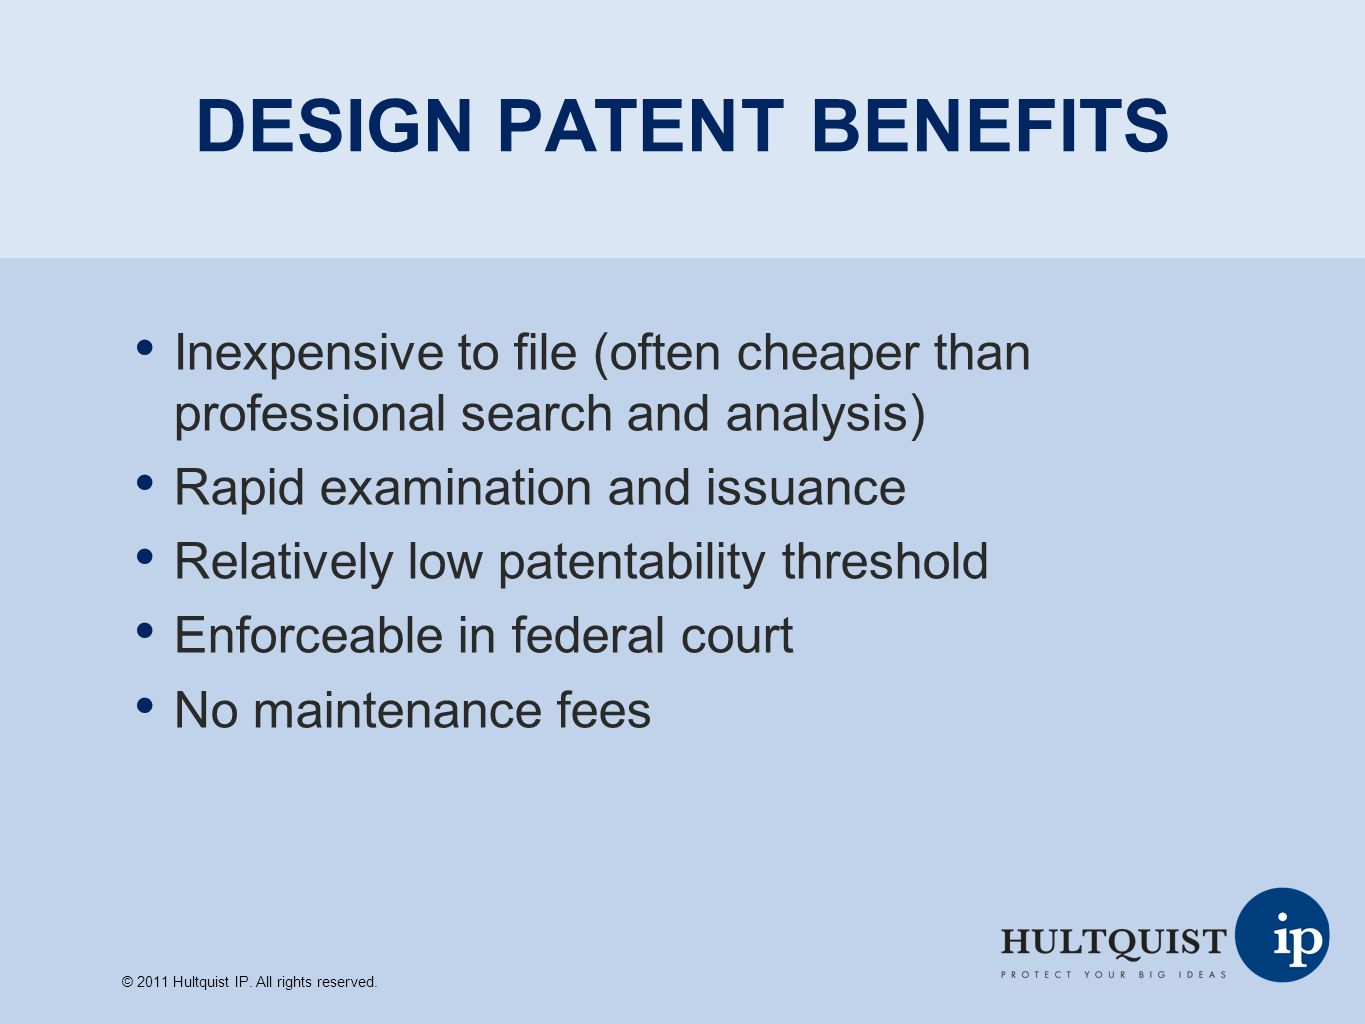 DESIGN PATENT BENEFITS